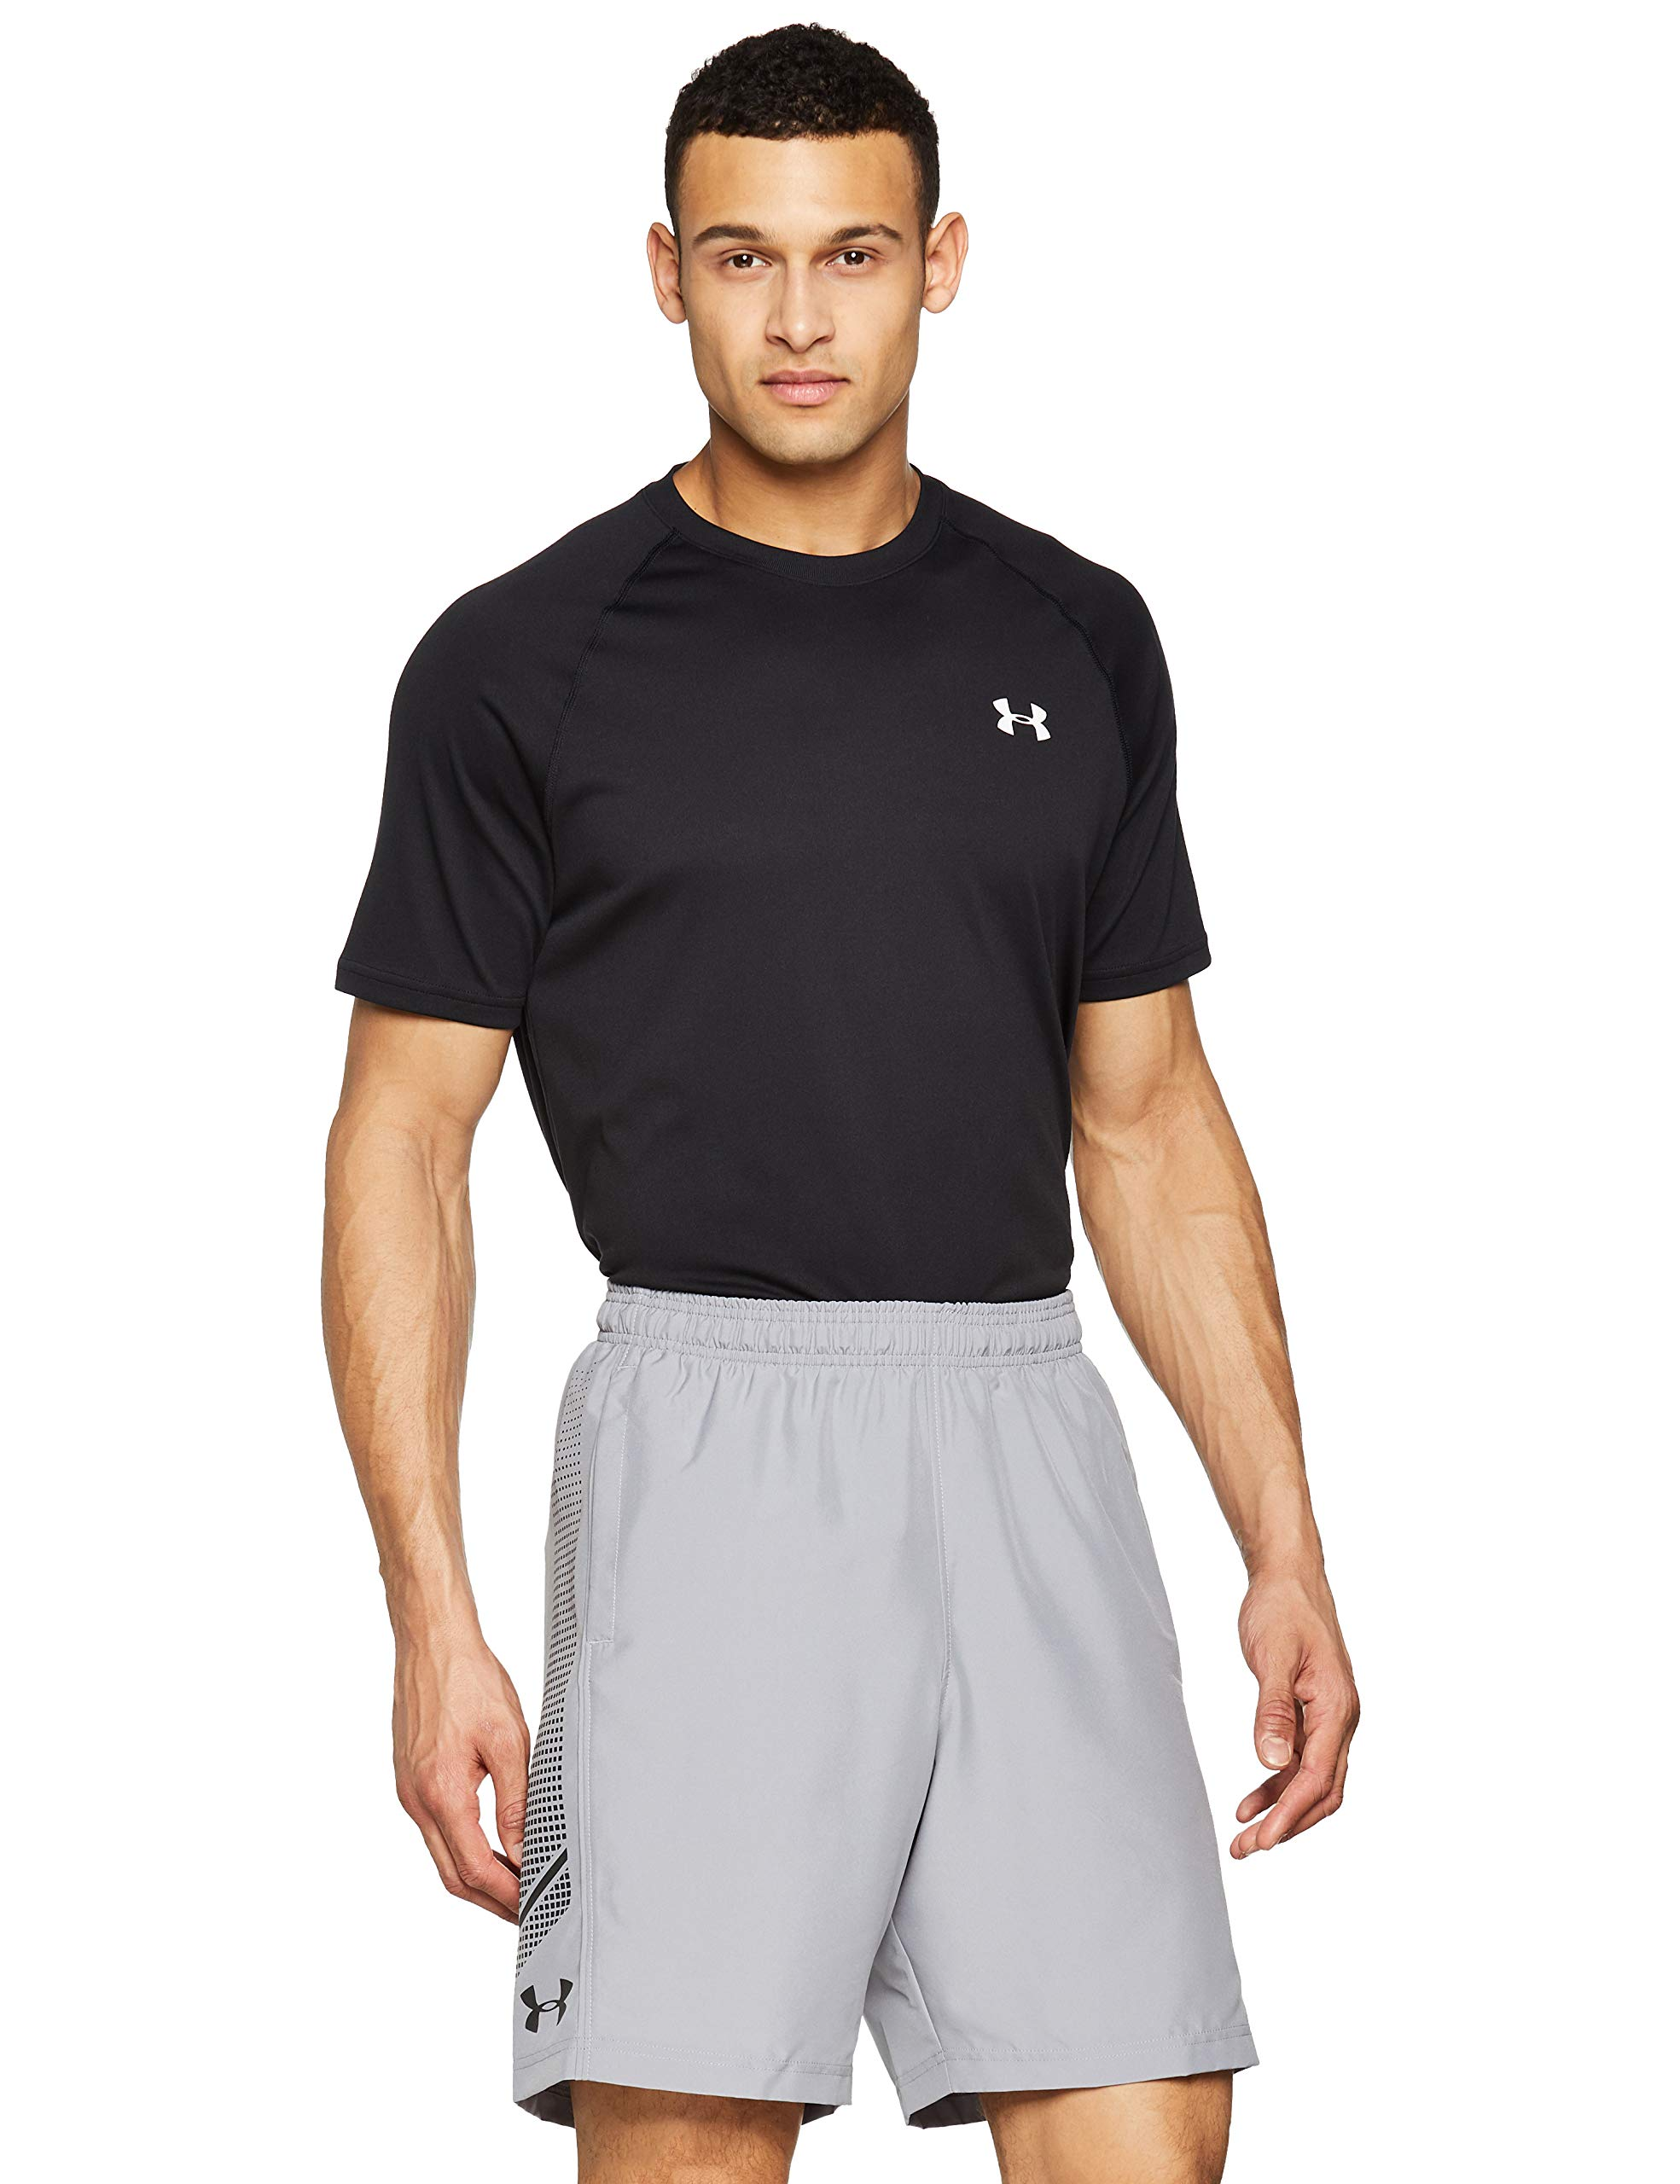 Under Armour Men's Woven Graphic Shorts, Steel